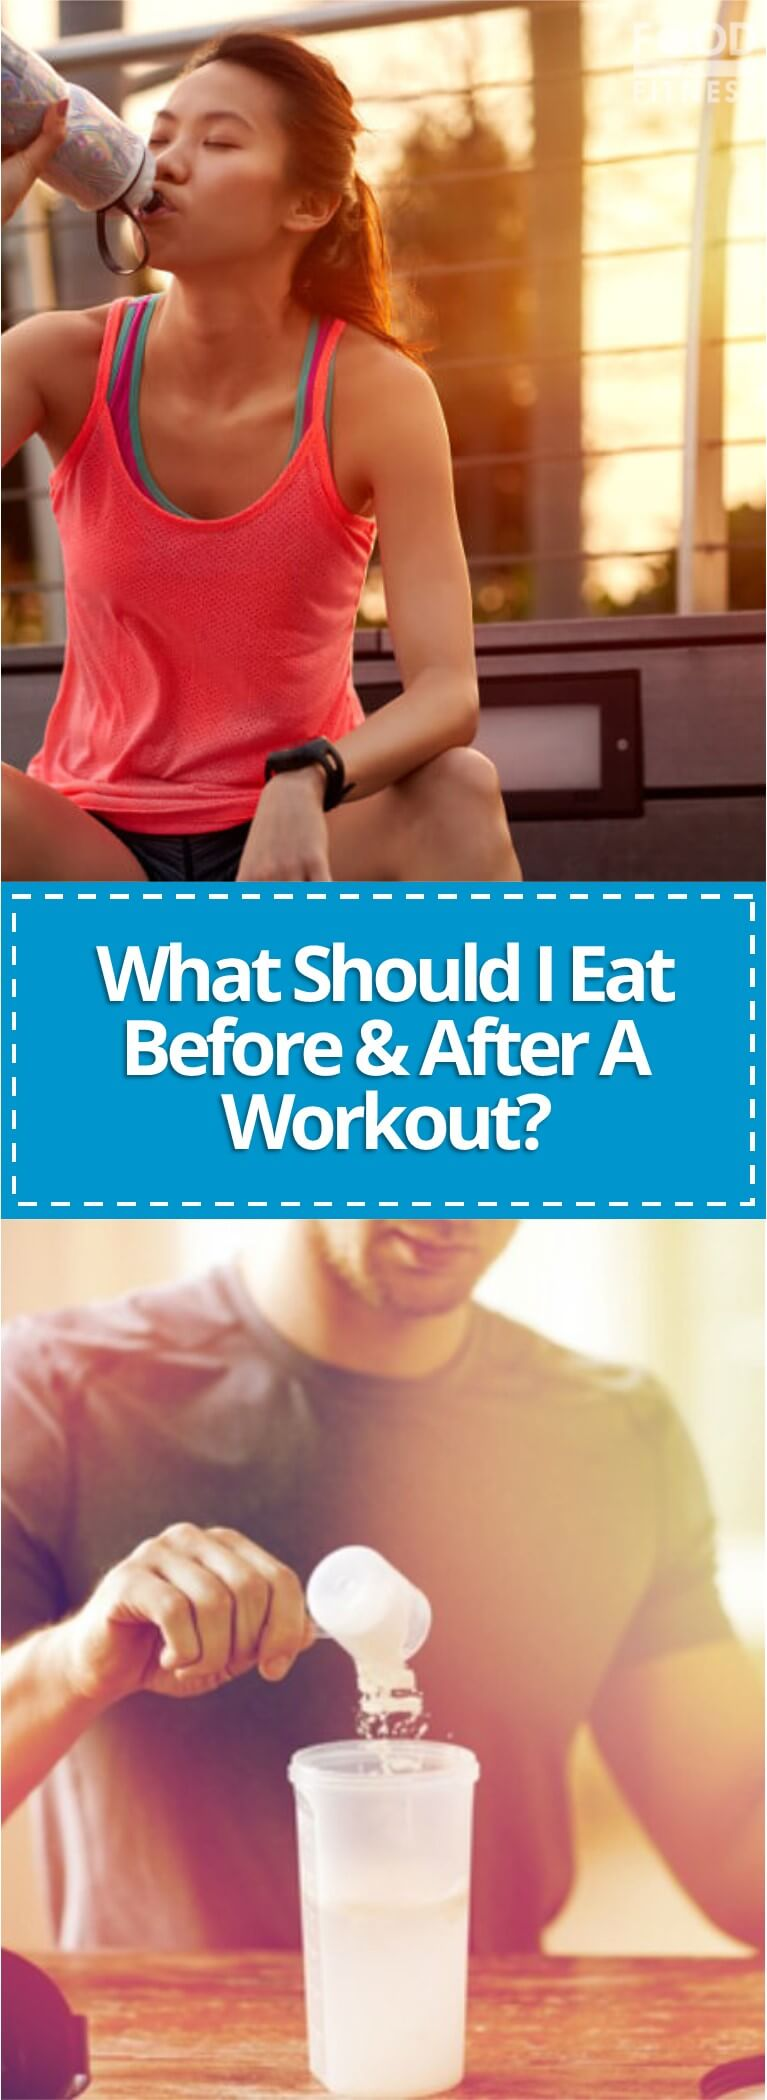 Pre & Post Meal Ideas: What Should I Eat Before And After A Workout?